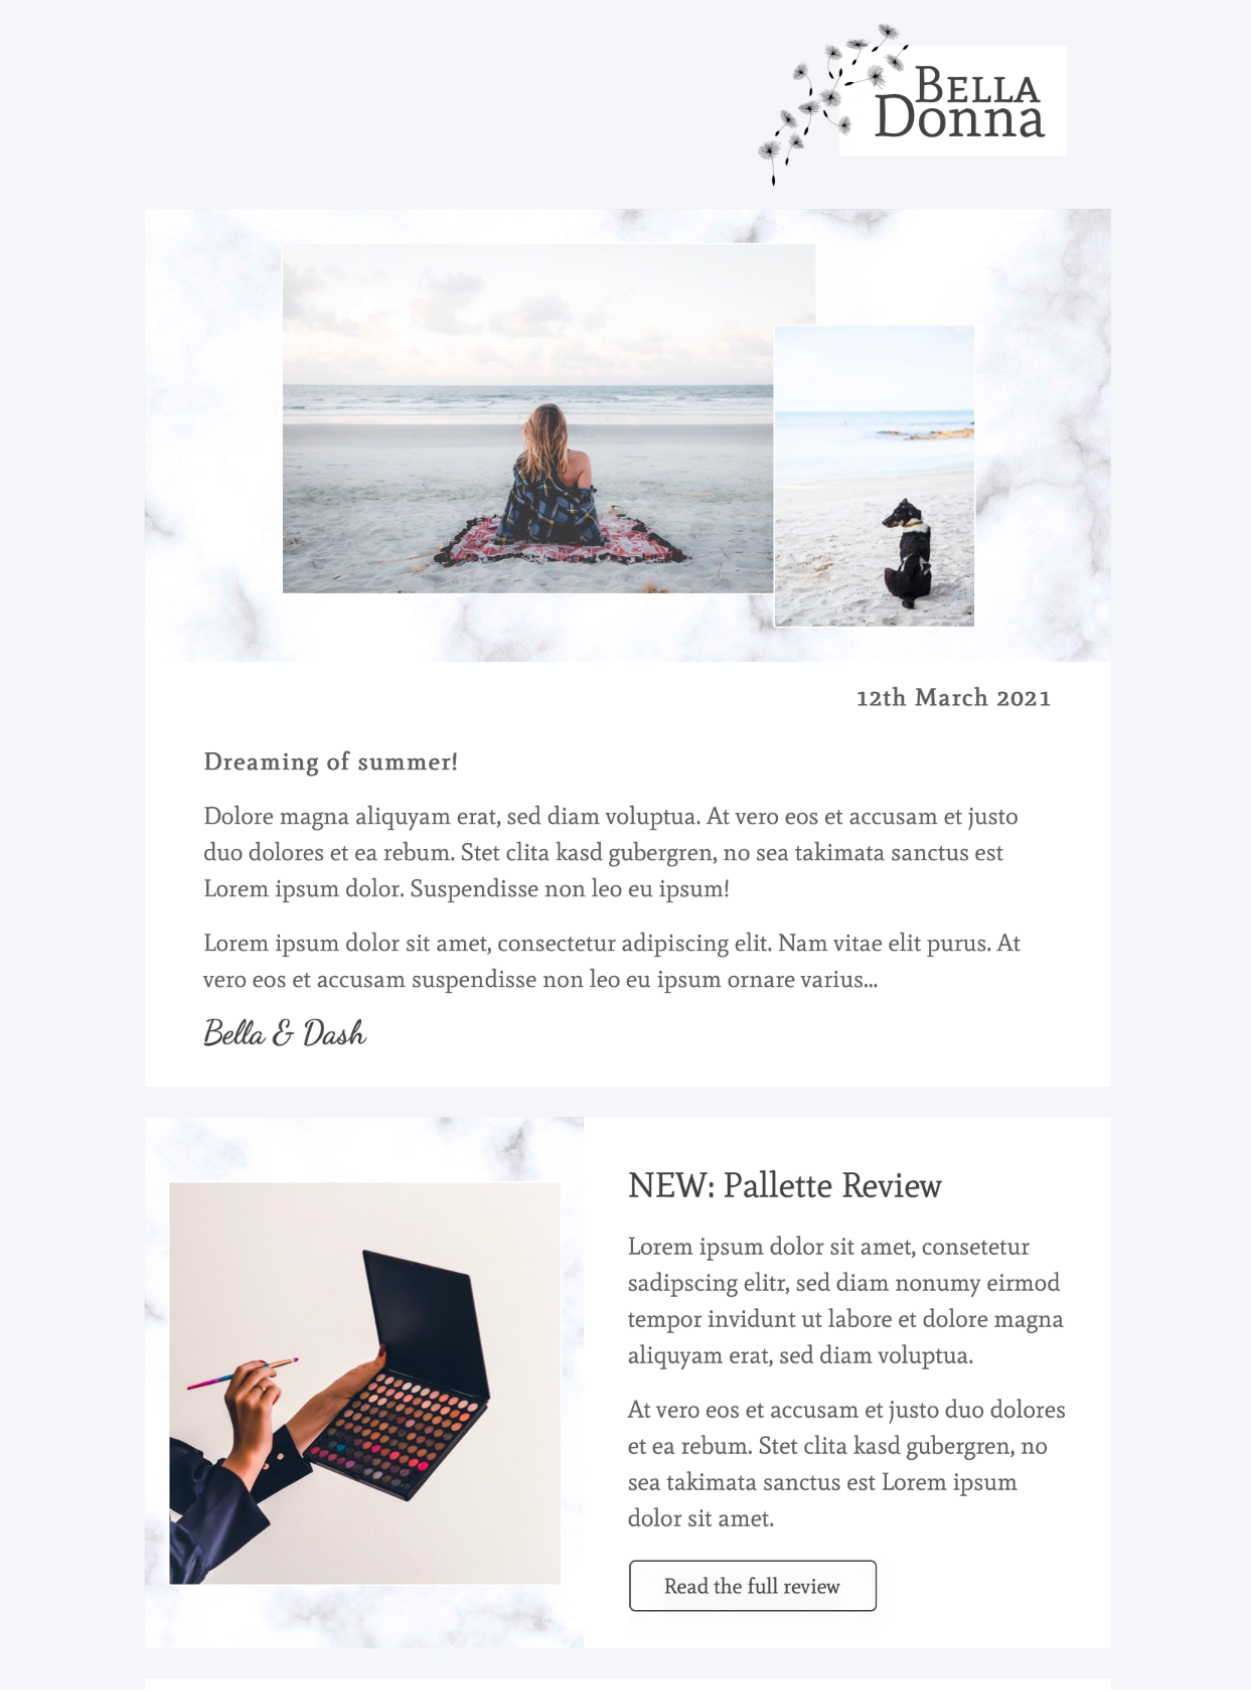 html email template for lifestyle bloggers and influencers